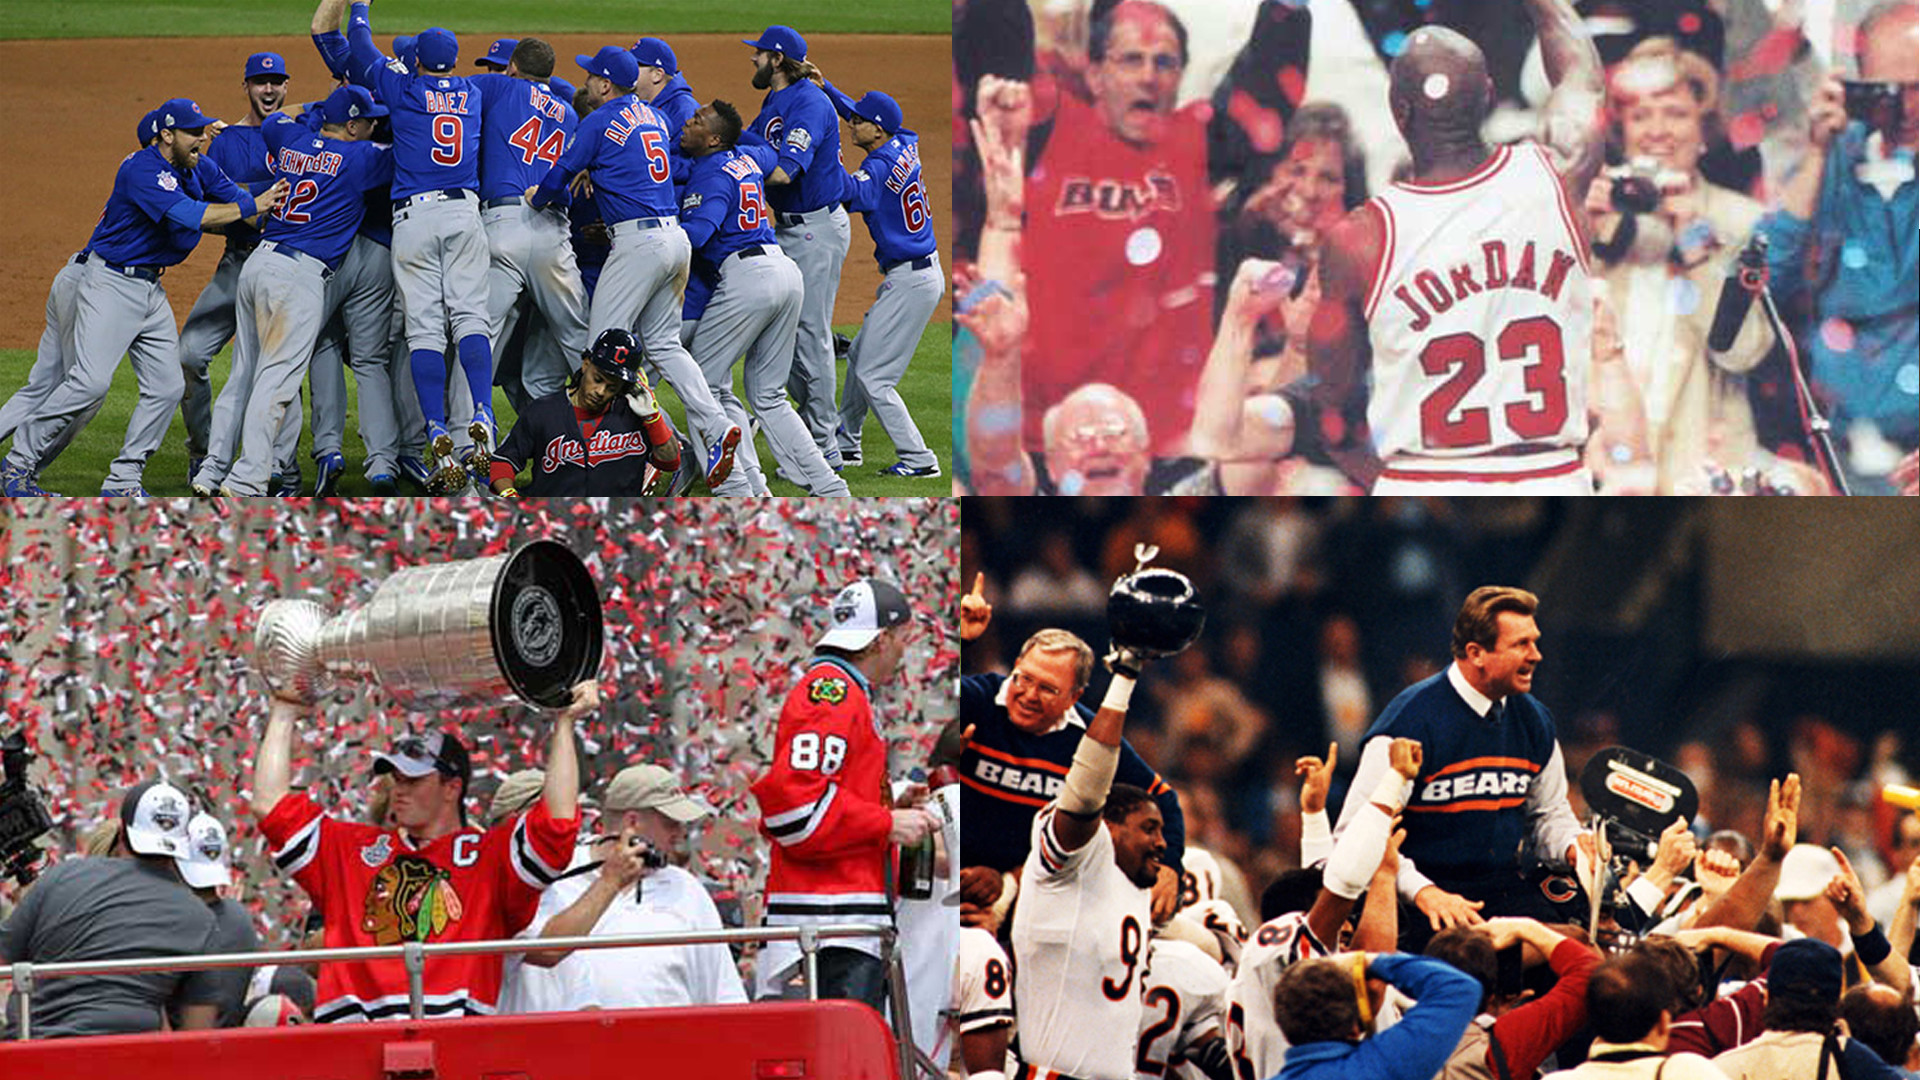 1920x1080 Timeline: 110 years of Chicago sports championships, 1906-2016 - Chicago  Tribune